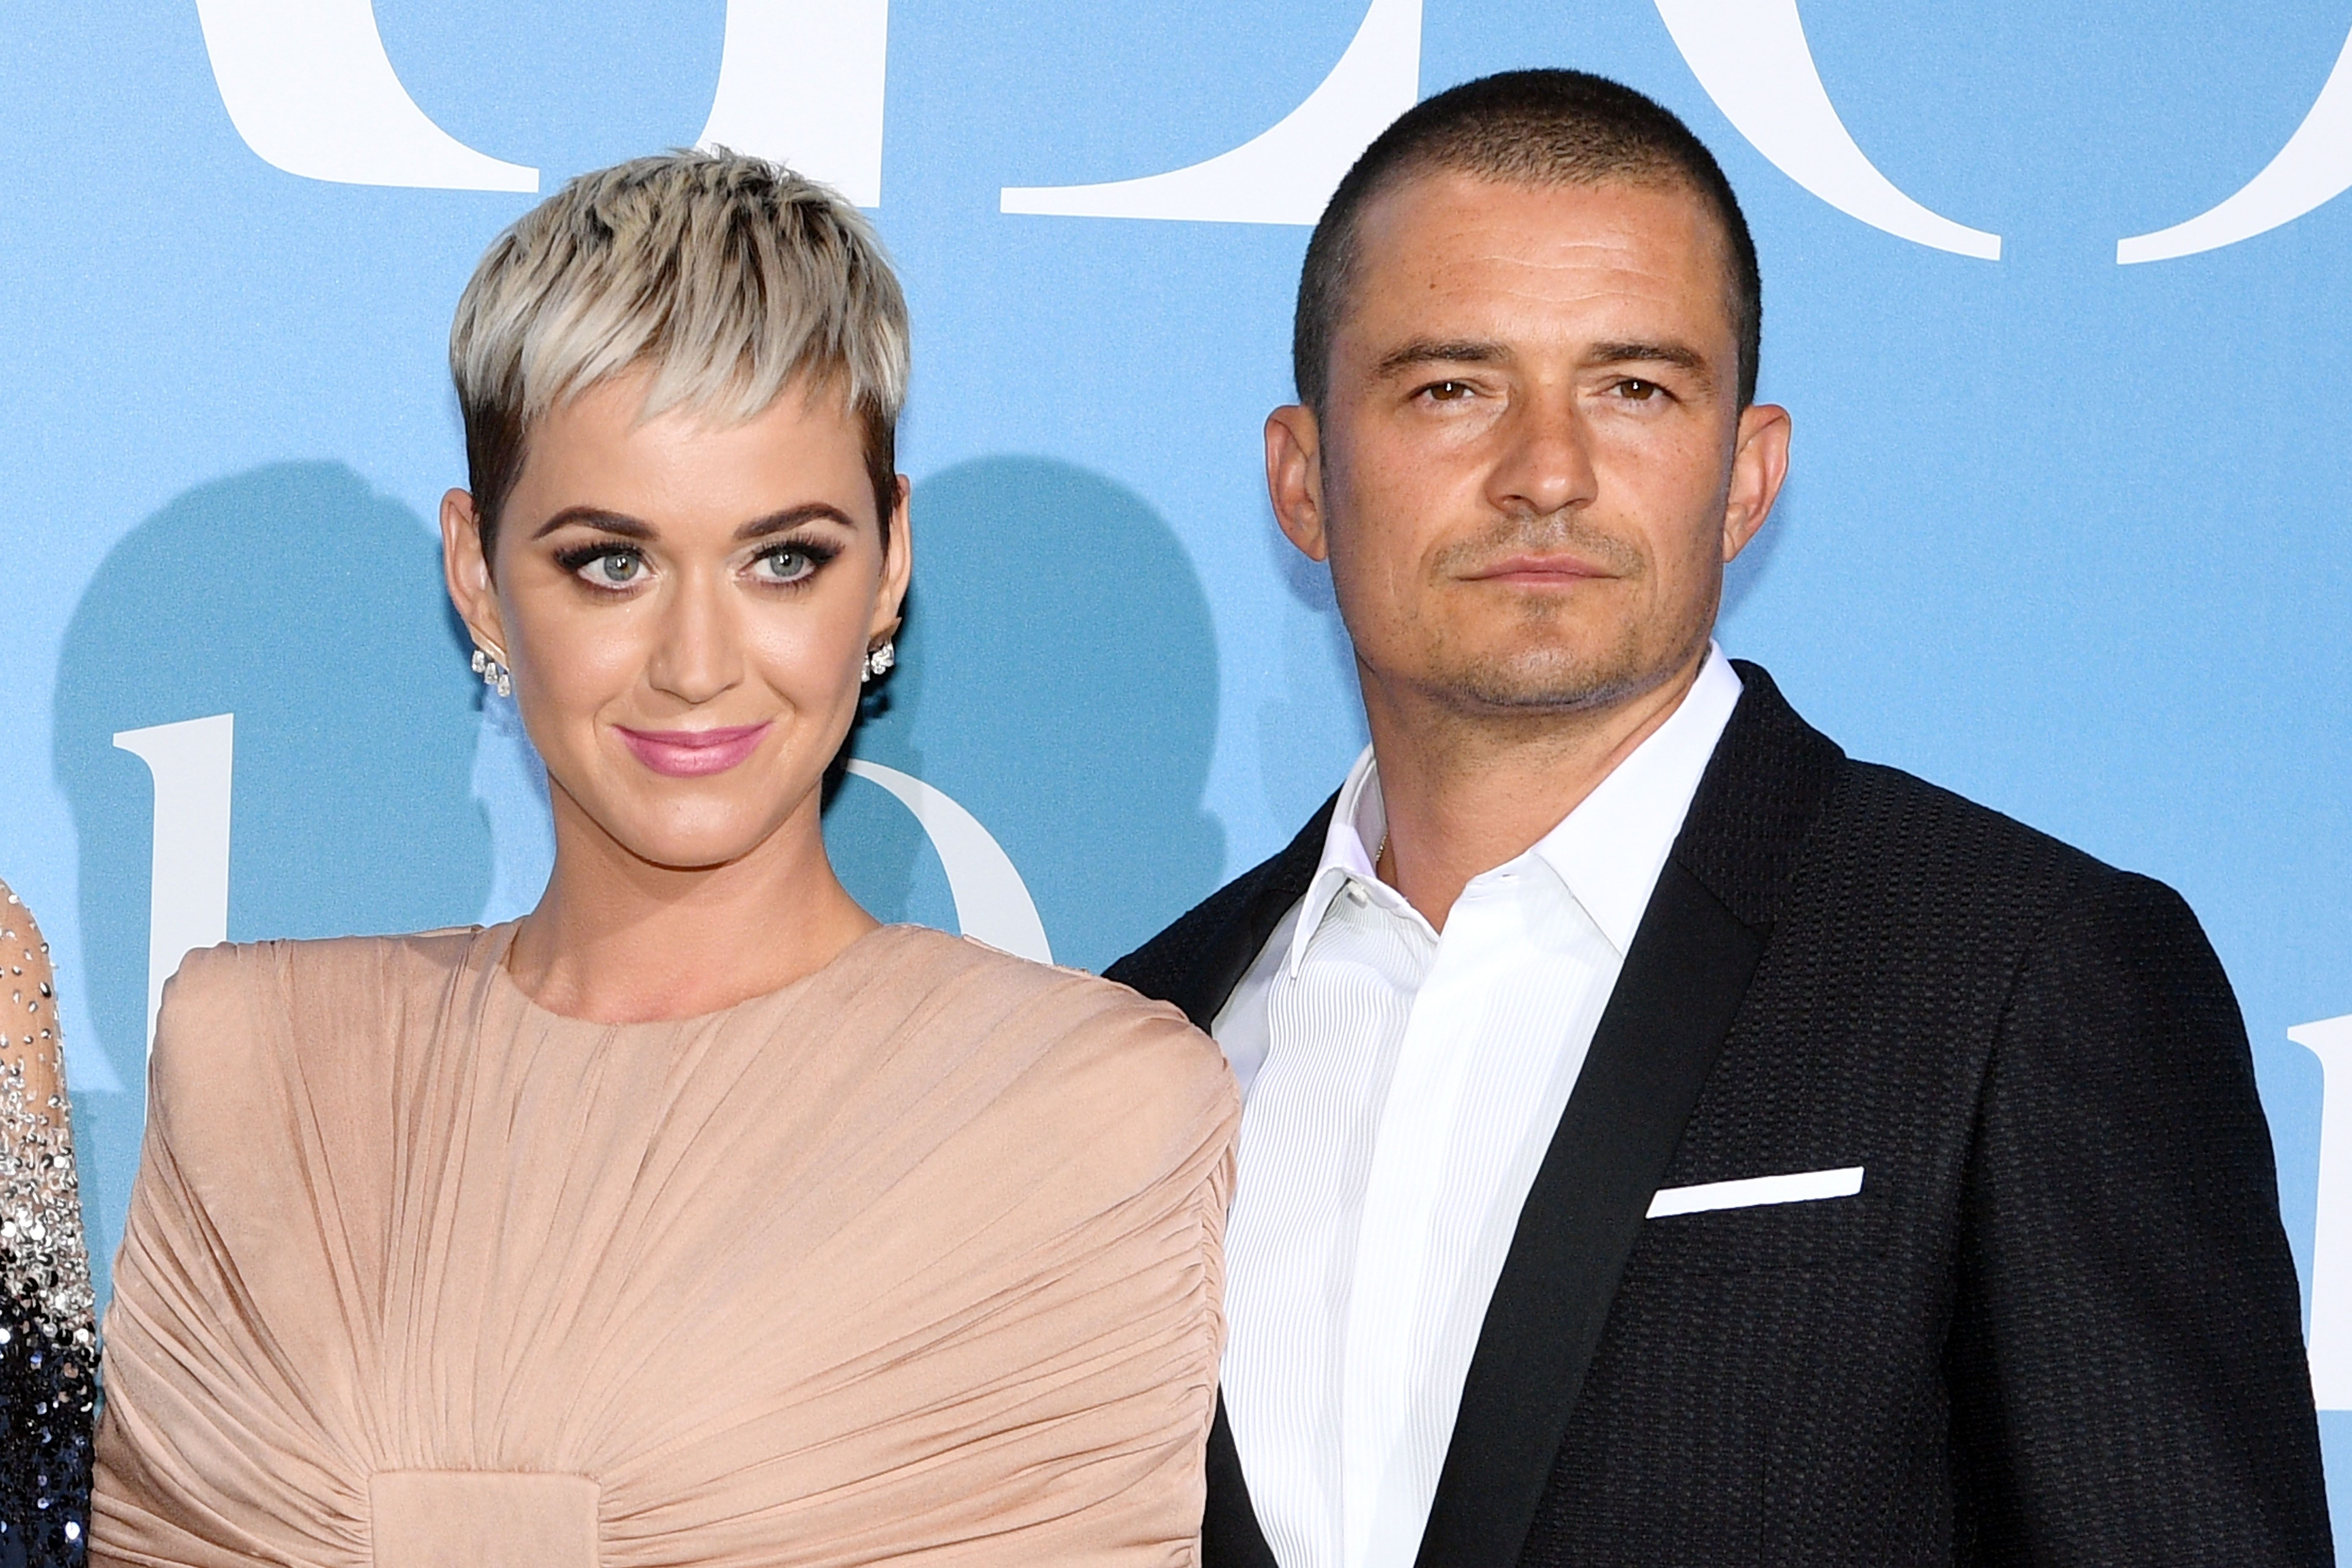 Katy Perry Said She and Orlando Bloom Need to Work on Their Relationship and Emotions Before Getting Married